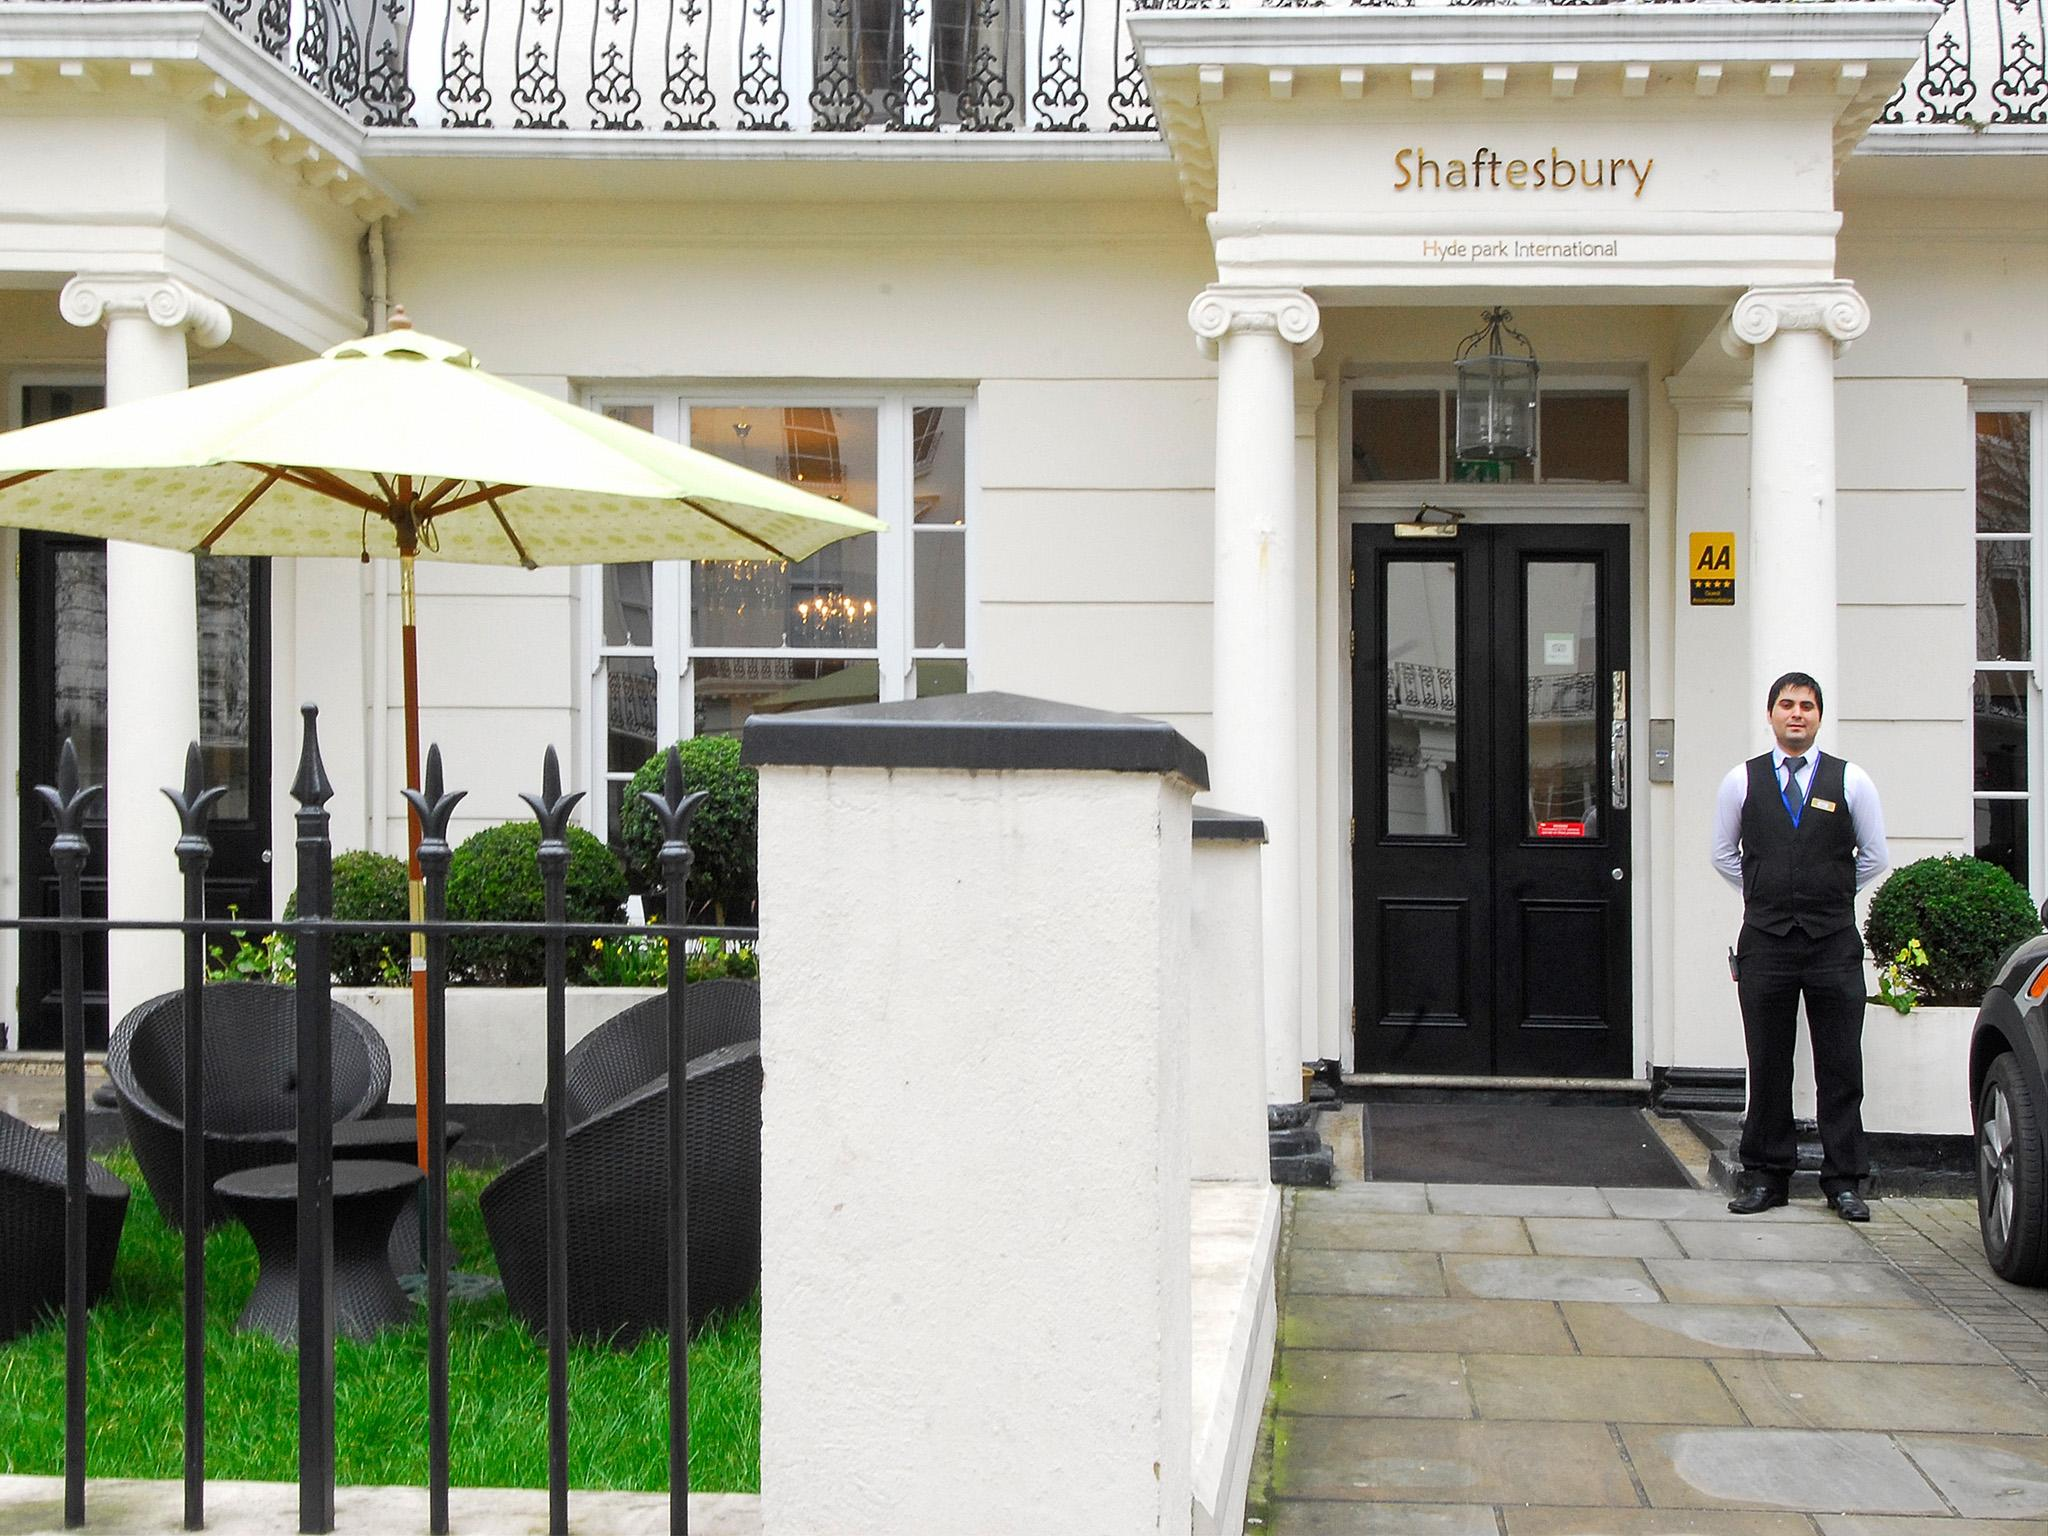 Shaftesbury Hyde Park International Hotel